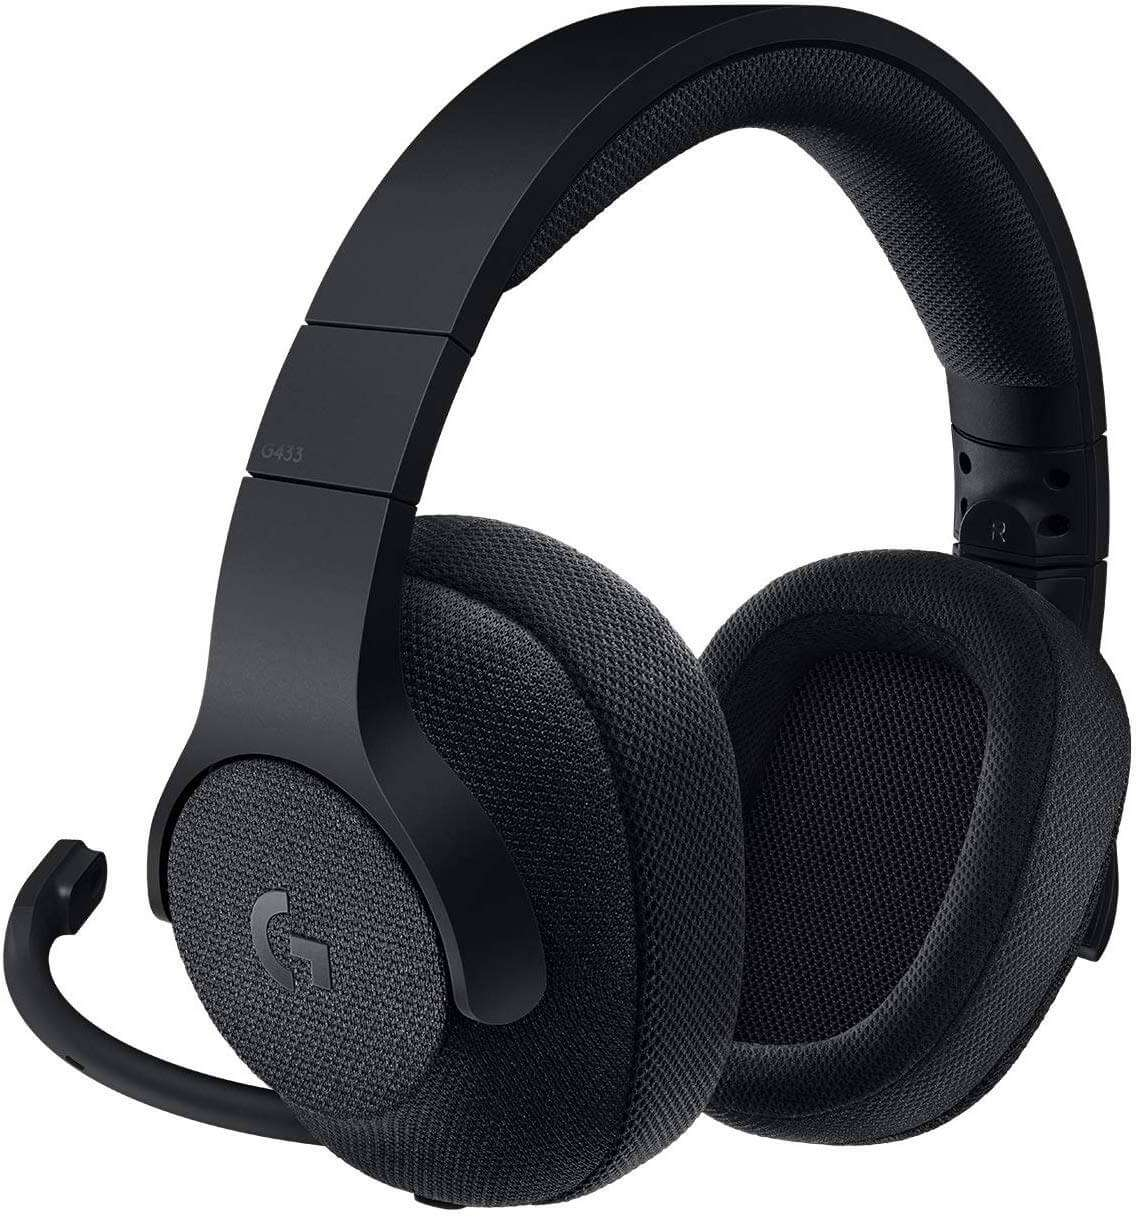 Logitech G433 Wired Gaming Headset - Triple Black